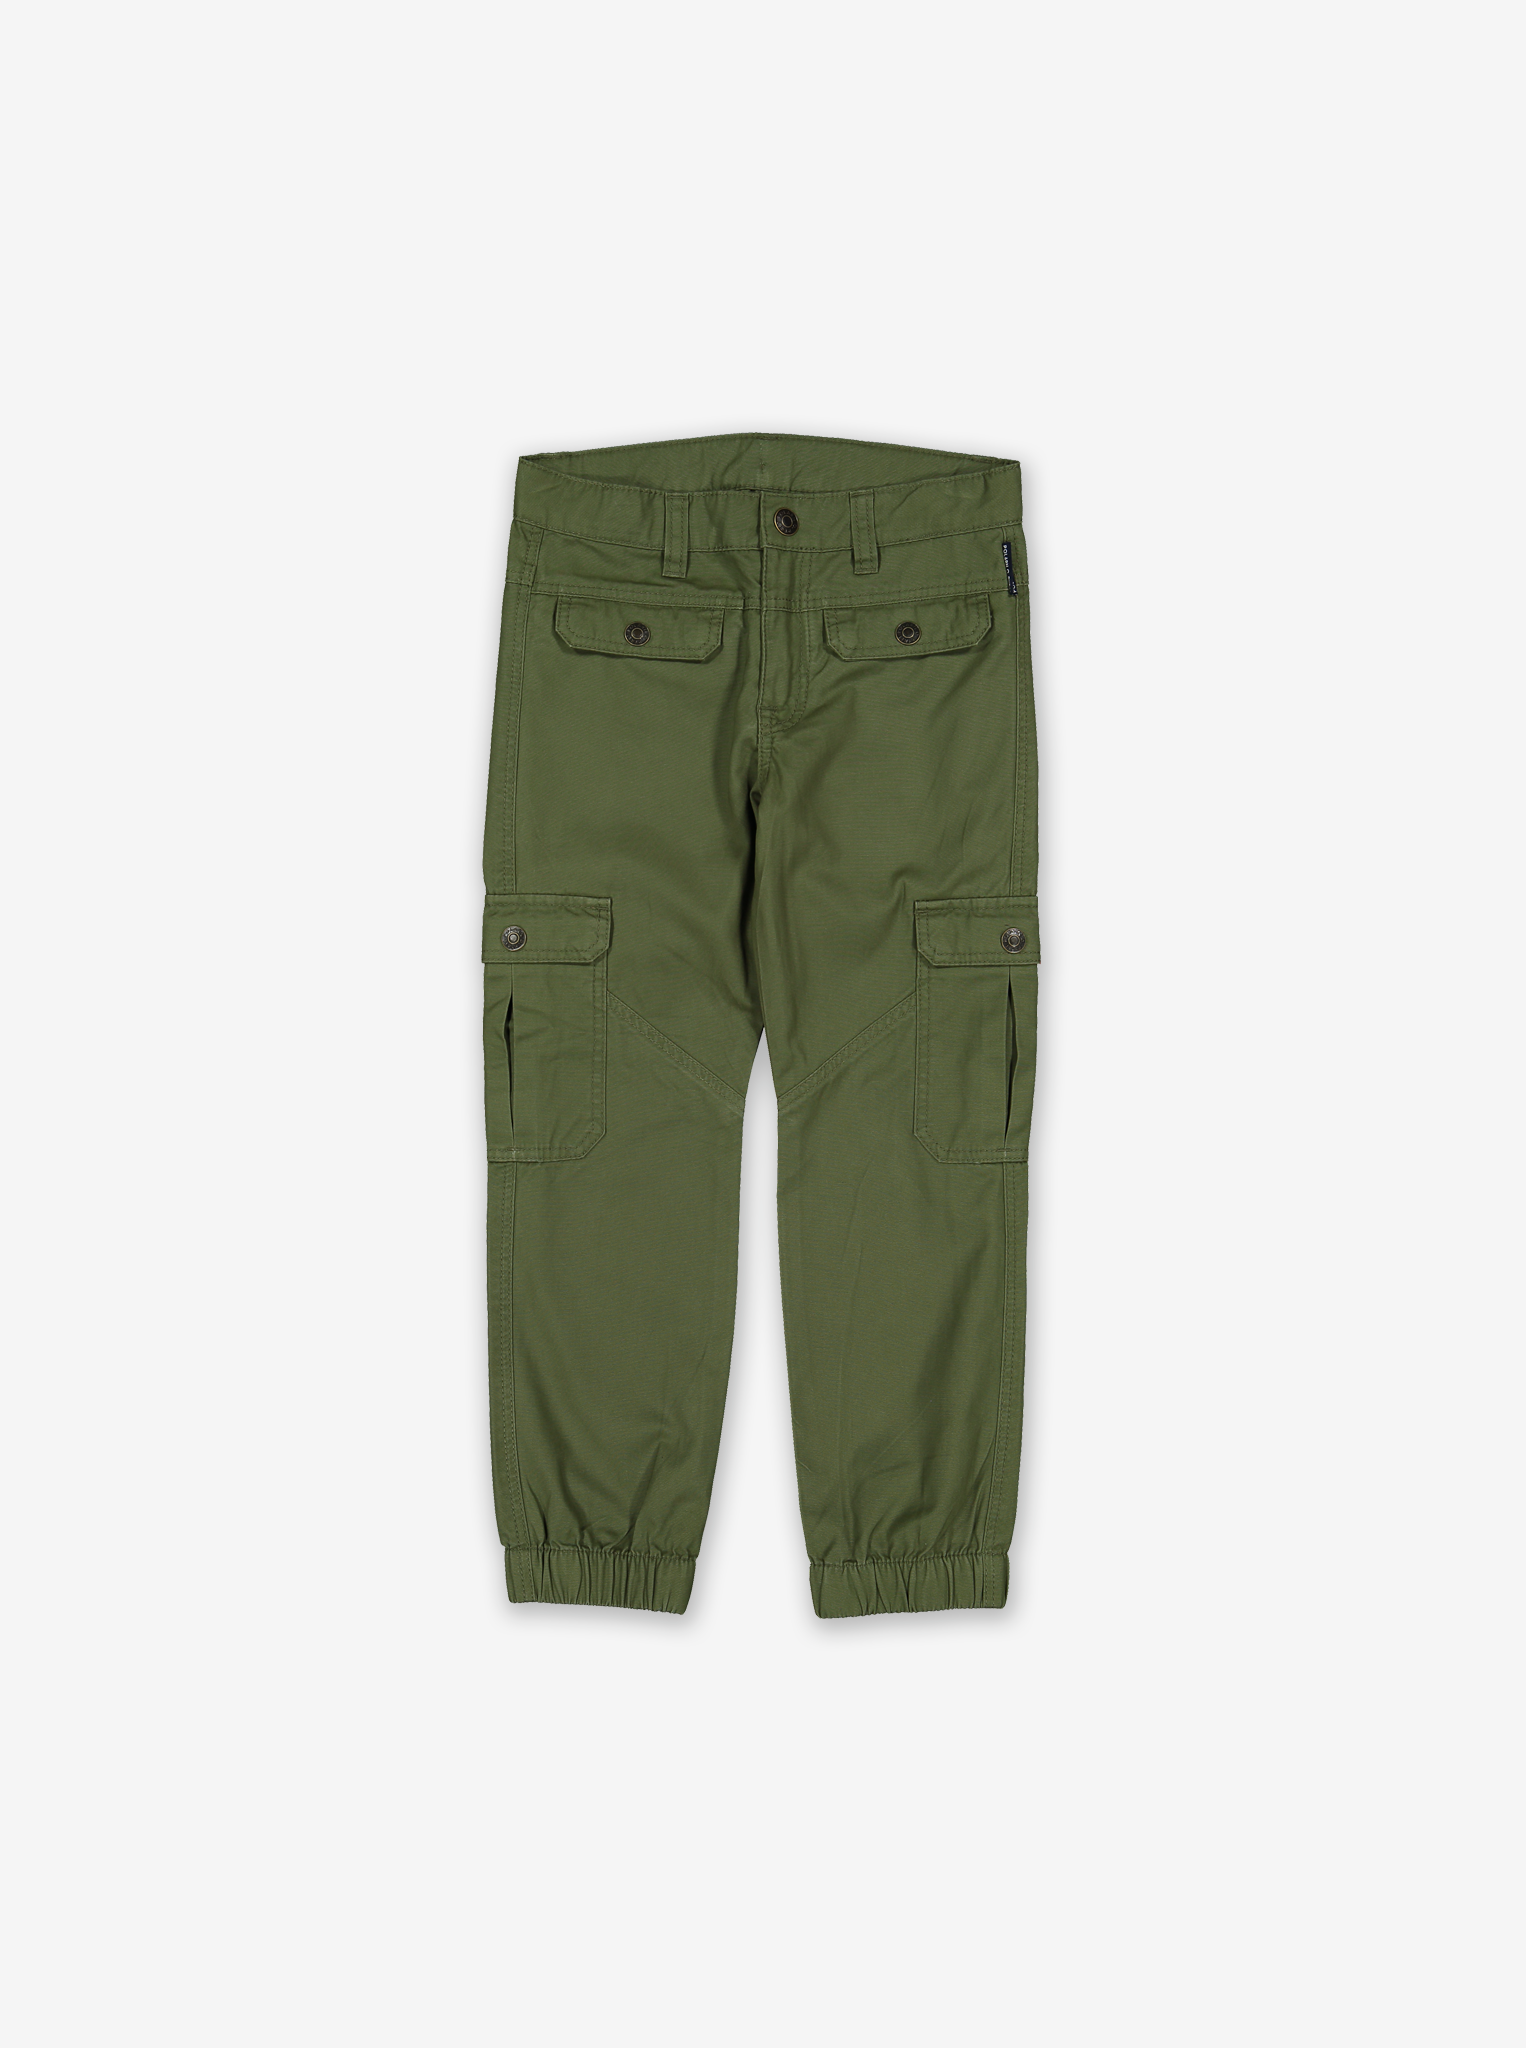 Kids Cargo Trousers-Boy-1-12y-Green